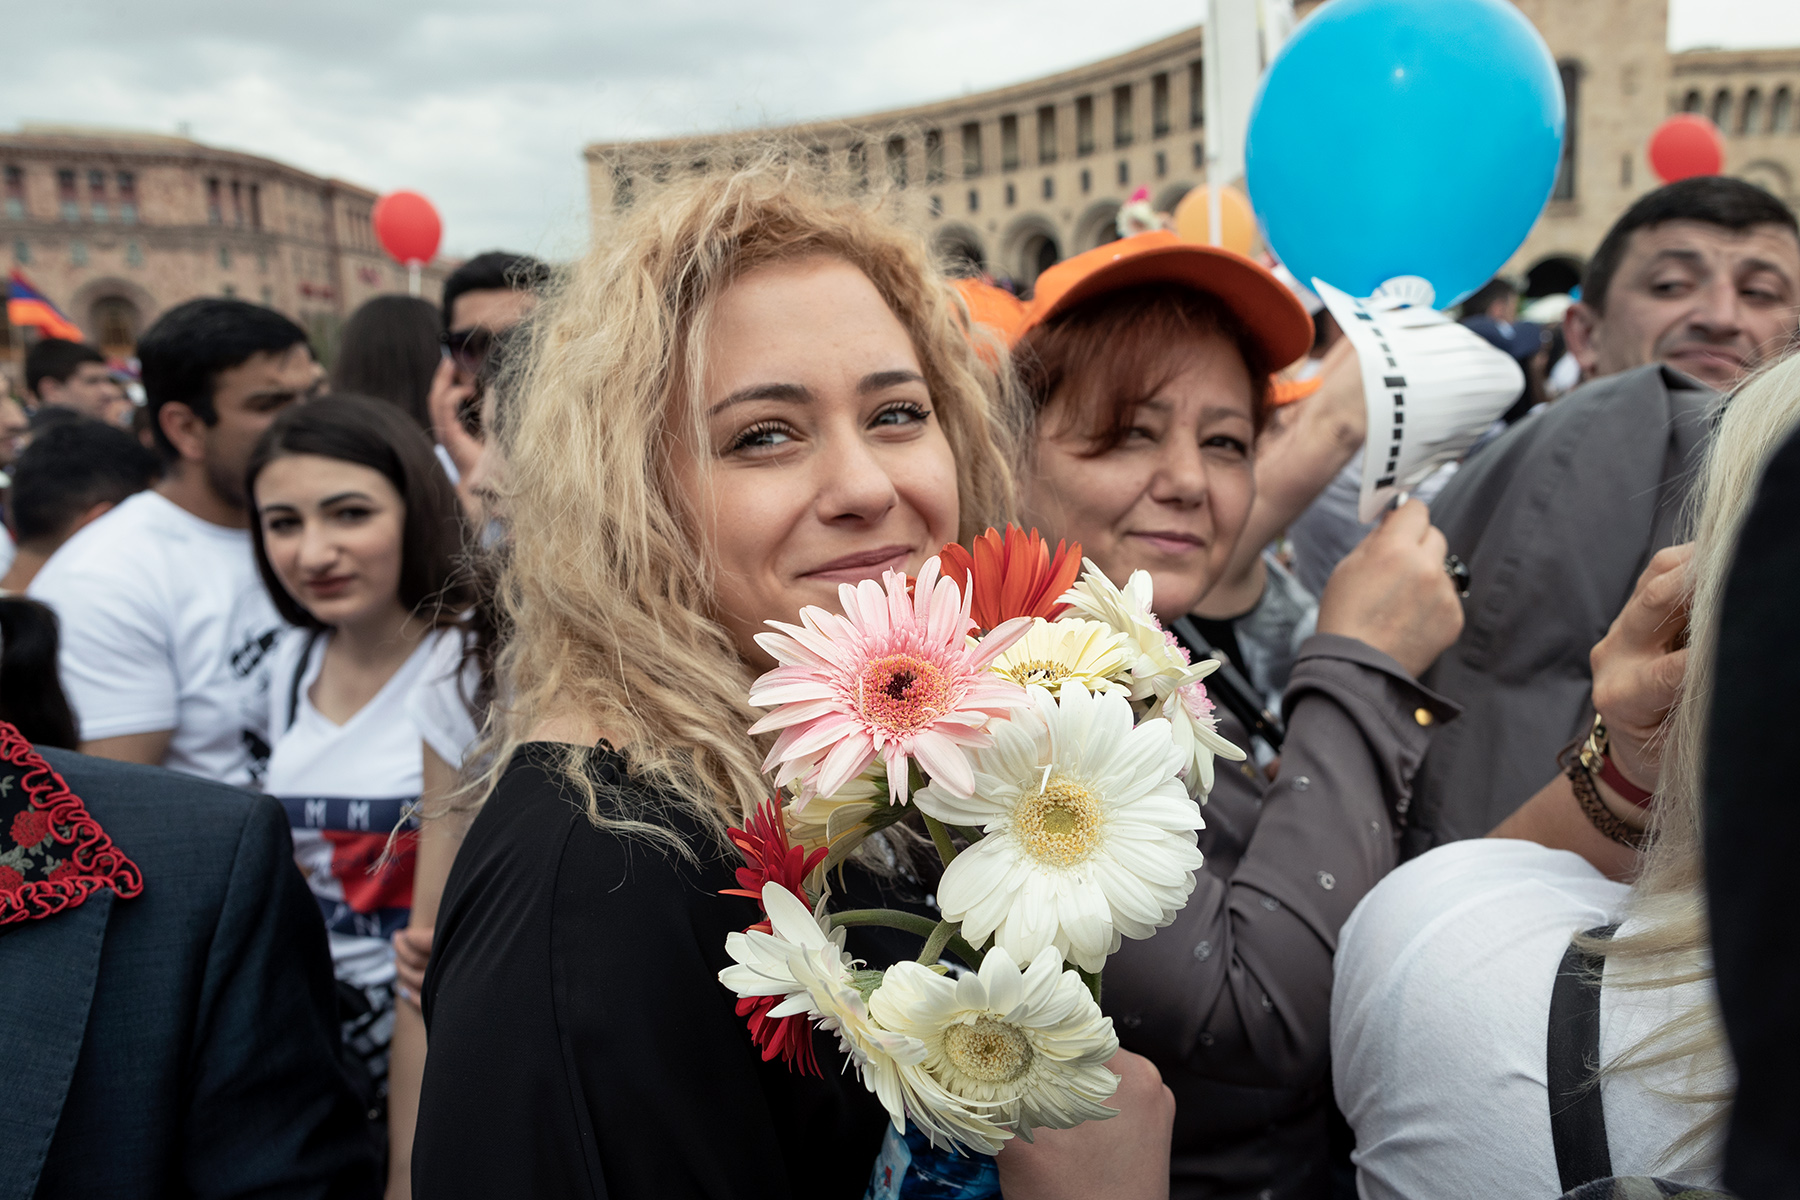 A young woman arrives on the Republic square with flowers to celebrate Nikol Pashinyan as new Prime minister after the parliamentary vote in Yerevan, Armenia on May 8, 2018